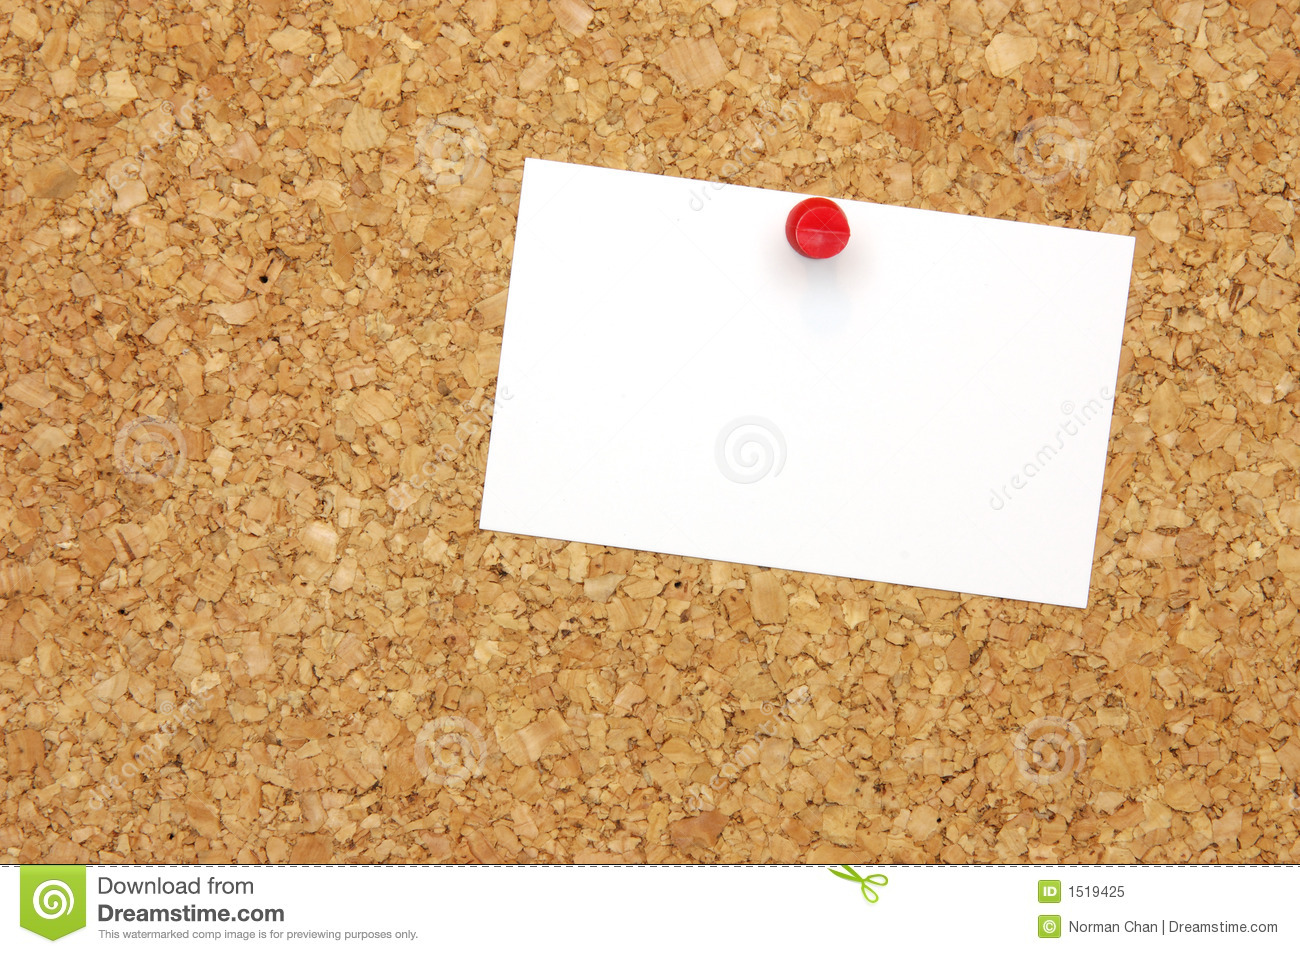 Cork board clipart.